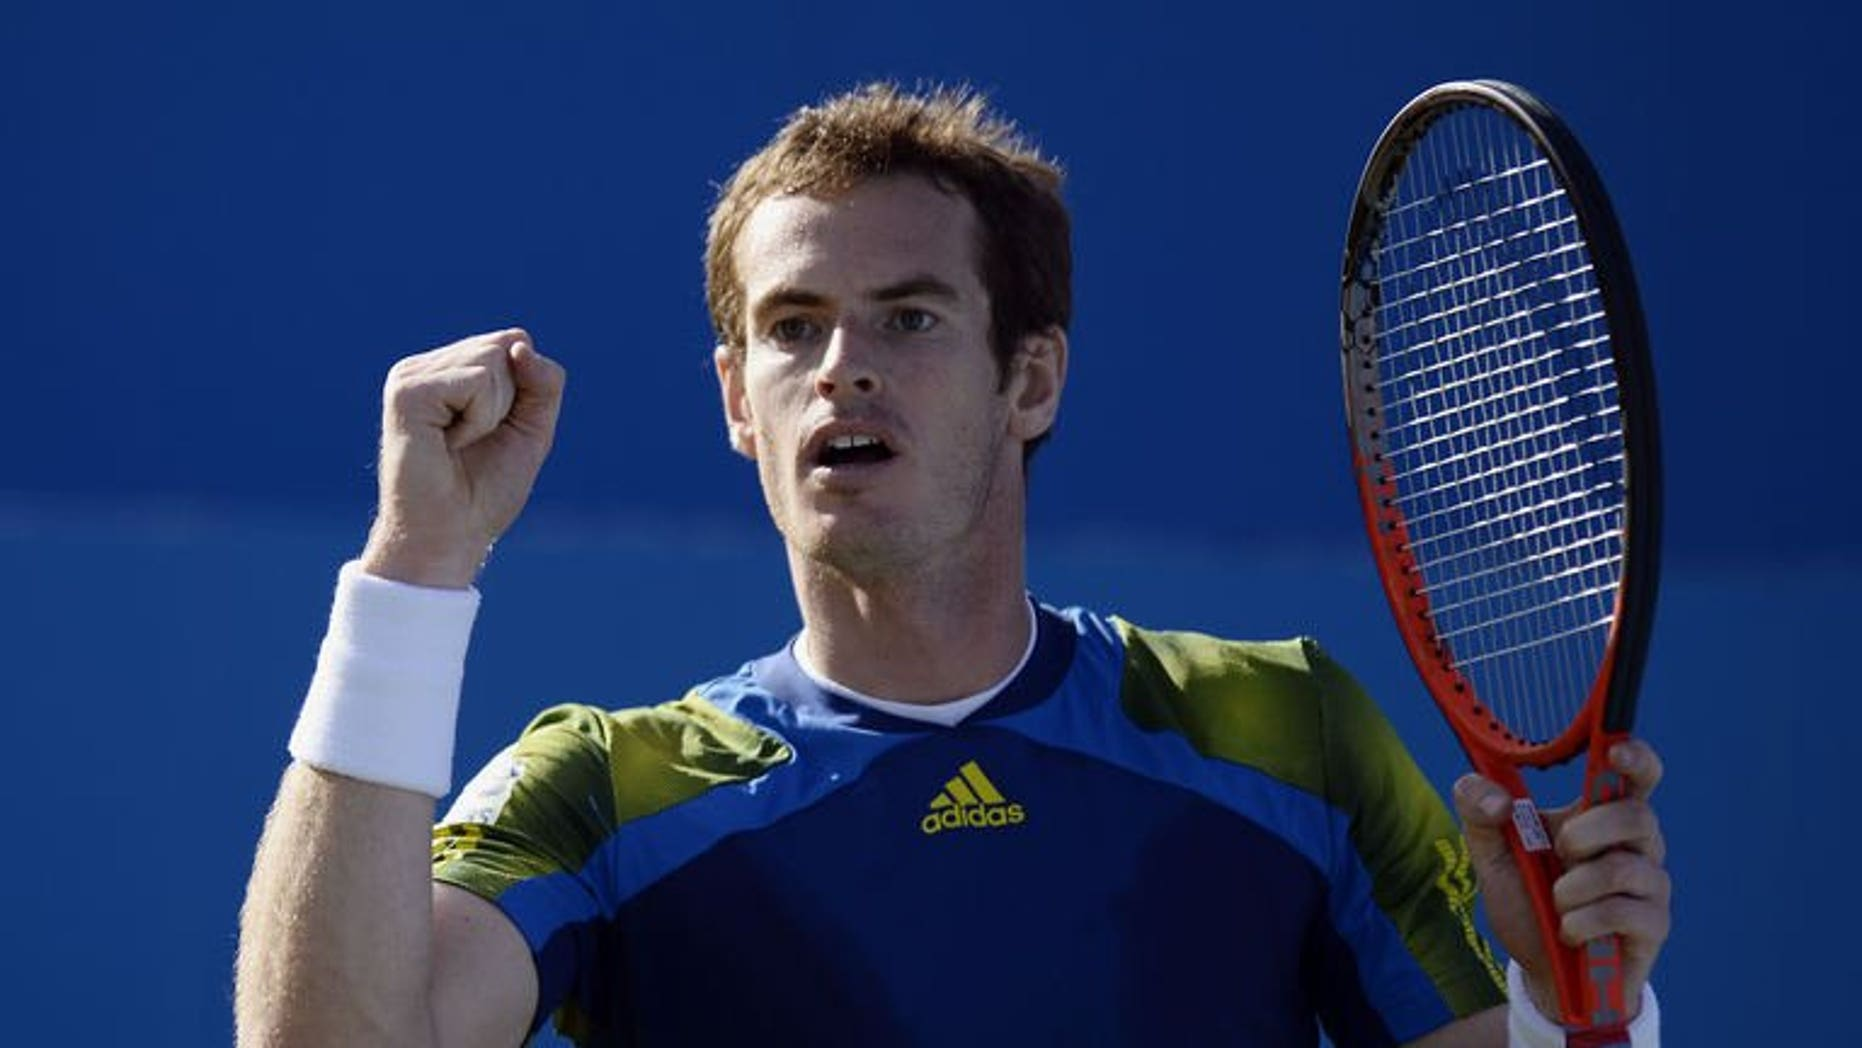 Britain's Andy Murray plays against Croatia's Marin Cilic during their ATP Aegon Championships match at the Queen's Club in London on June 16, 2013. John McEnroe believes that Murray is ideally placed over the next fortnight to win Wimbledon for the first time and end 77 years of British failure at the tournament.